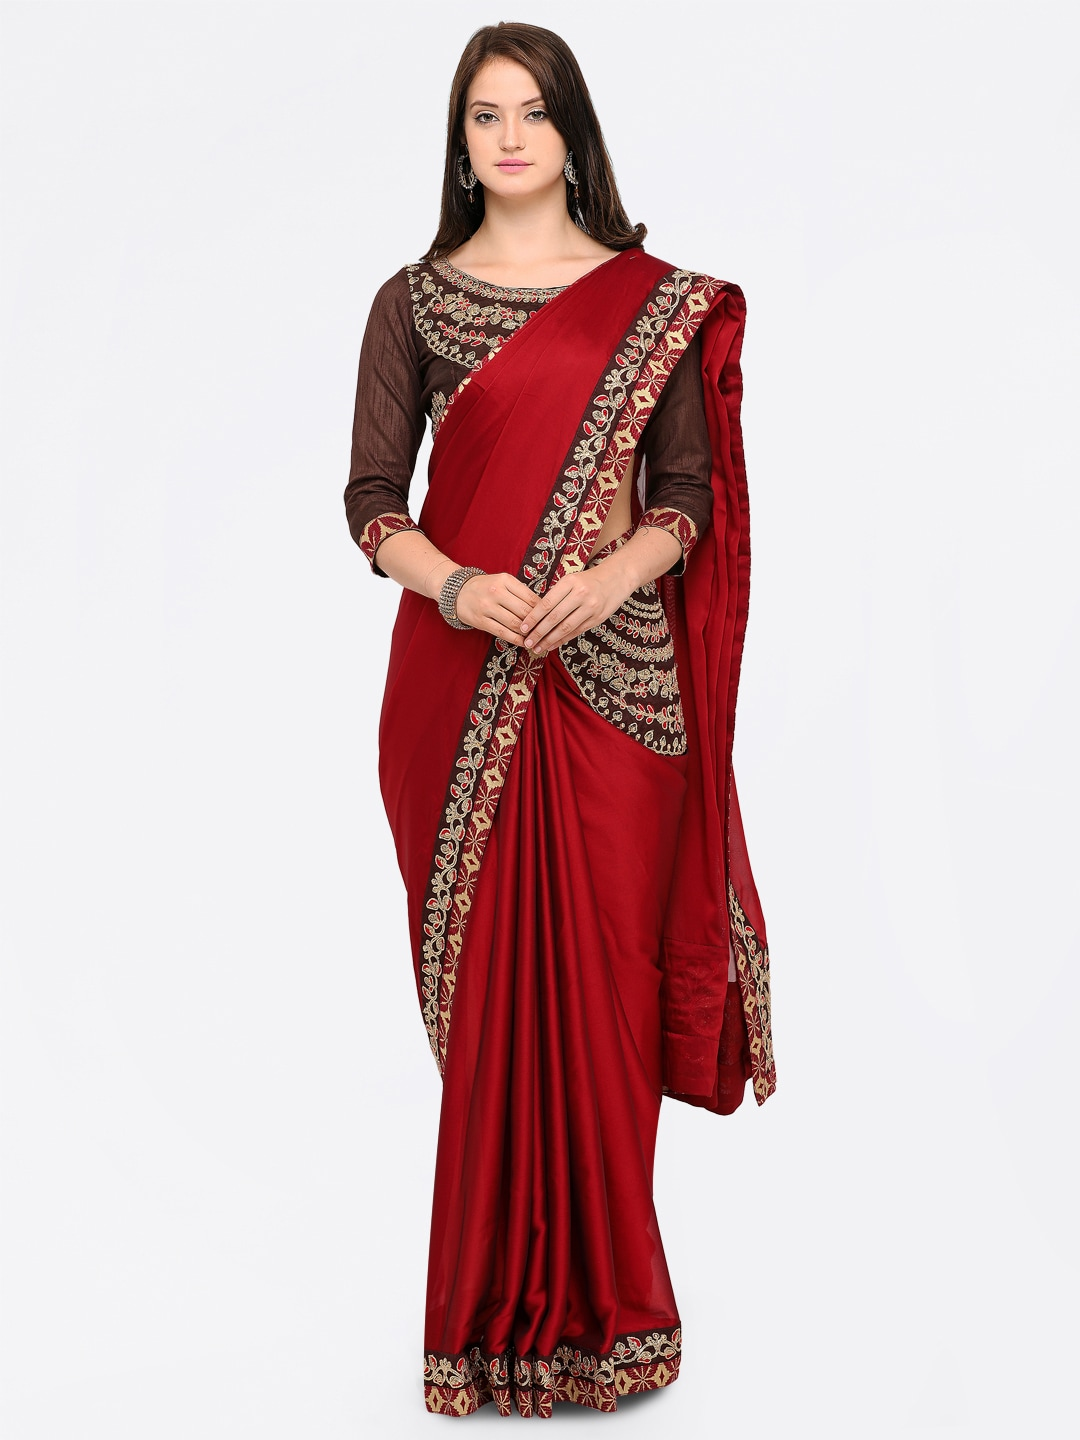 1743a94579d Maroon Saree - Buy Maroon Sarees Online in India